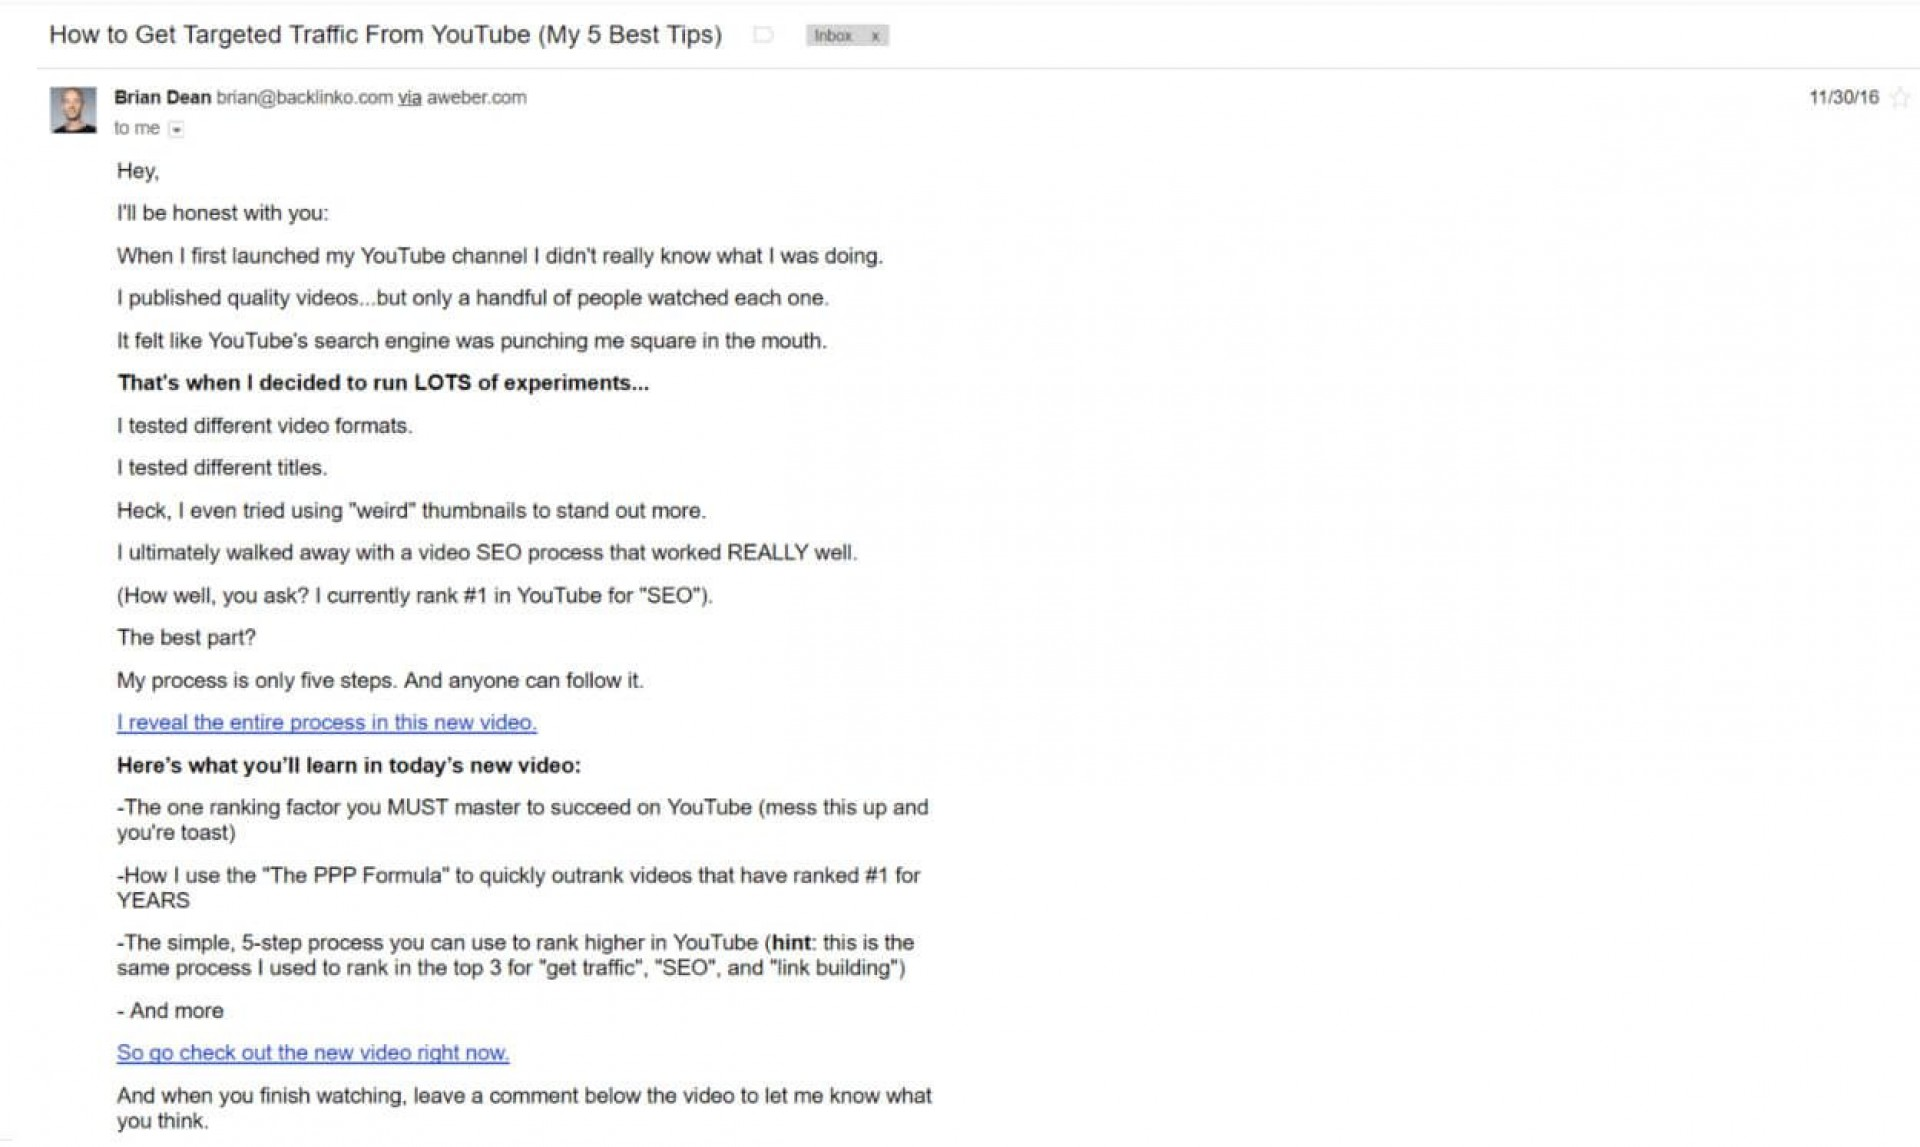 004 Shocking Follow Up Email Template After No Response Design 1920